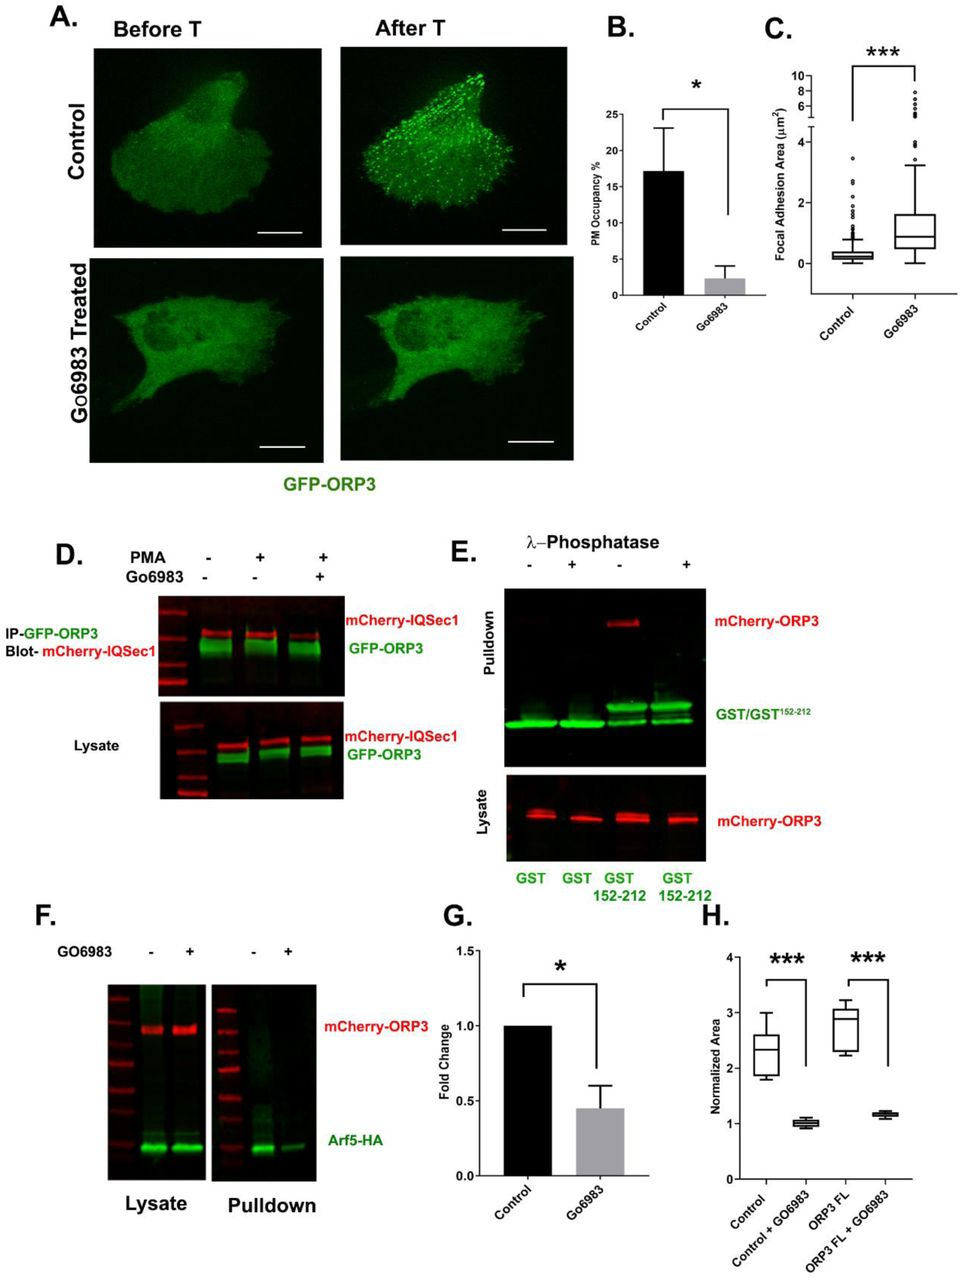 Phosphoregulation of ORP3 recruitment to the PM (A) MDA-MB-231cells expressing GFP-ORP3 were mock treated with DMSO or with the pan-PKC inhibitor Gö6983 (20µM) for 2 hr. Both groups of cells were then stimulated with thapsigargin (1µM) and imaged live. Images show a representative cell after 5 min thapsigargin treatment. Bar = 10µm. (B) Percentage of ORP3 engaged with the PM from control and Gö6983 treated cells after thapsigargin treatment. Data were collected from 5 cells per group. (C) Quantification of focal adhesion size in control and Gö6983 treated cells, fixed and stained for vinculin as a marker for FA, N for control = 330 and for Gö6983 = 372 FA. Data were collected from 5 cells per group ( D) Cells co-expressing mCherry-IQSec1 and GFP-ORP3 were incubated with PMA in the presence or absence of Gö6983. ORP3 immunoprecipitates were then probed for IQSec1. This experiment was done twice and a similar trend was noted. (E) Lysates of cells expressing mCherry-ORP3 were incubated (or not) with λ-phosphatase to dephosphorylate ORP3, then precipitated with GST alone, or a GST fusion containing IQSec1 residues 152-212. This experiment was done twice and a similar trend was noted. (F) Arf5 activity was measured by pulldown in the presence and absence of the PKC inhibitor Gö6983. (G) Quantitation of Arf5 activity, corresponding to panel 'F'. Data were compiled from three independent experiments. (H) Quantification cell migration out of spheroids from parental MDA-MB-231 cells or cells stably expressing-ORP3-FL. One batch of spheroids from each group was left untreated, and a second batch was treated with Gö6983 embedded in 3D collagen and imaged live for 22hrs. Data was collected from 7 spheroids from both groups